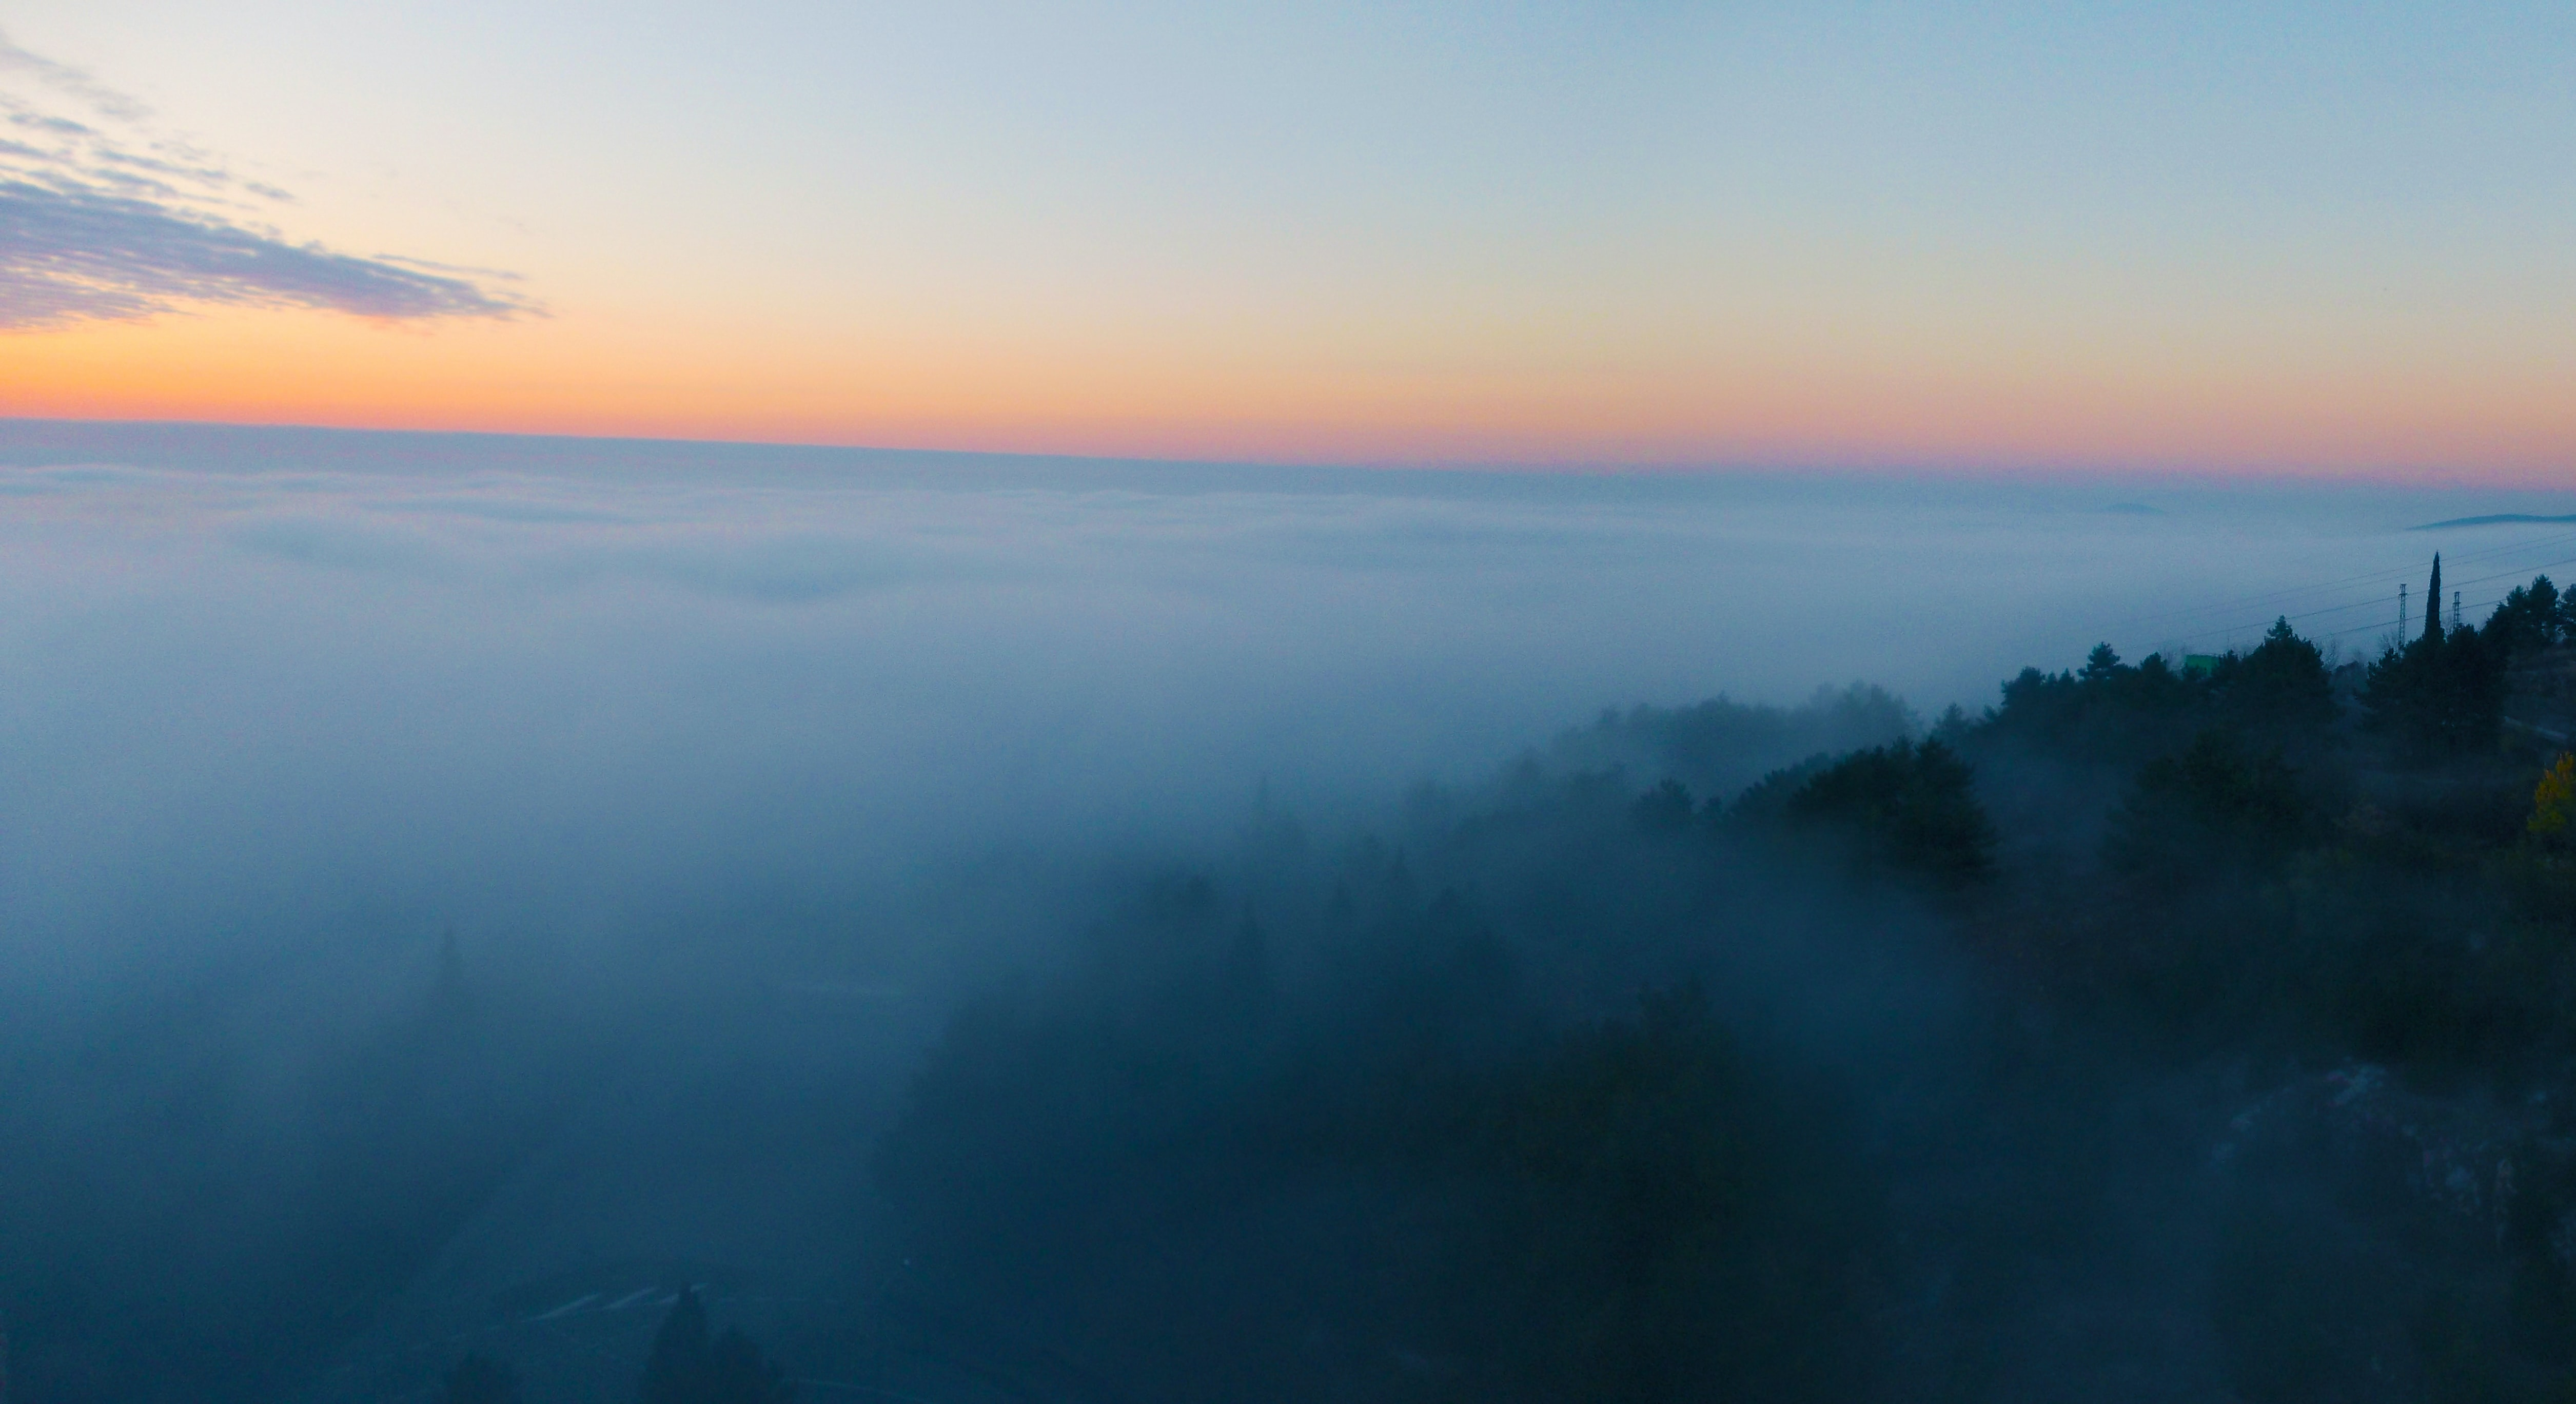 bird's eye view of forest with fog